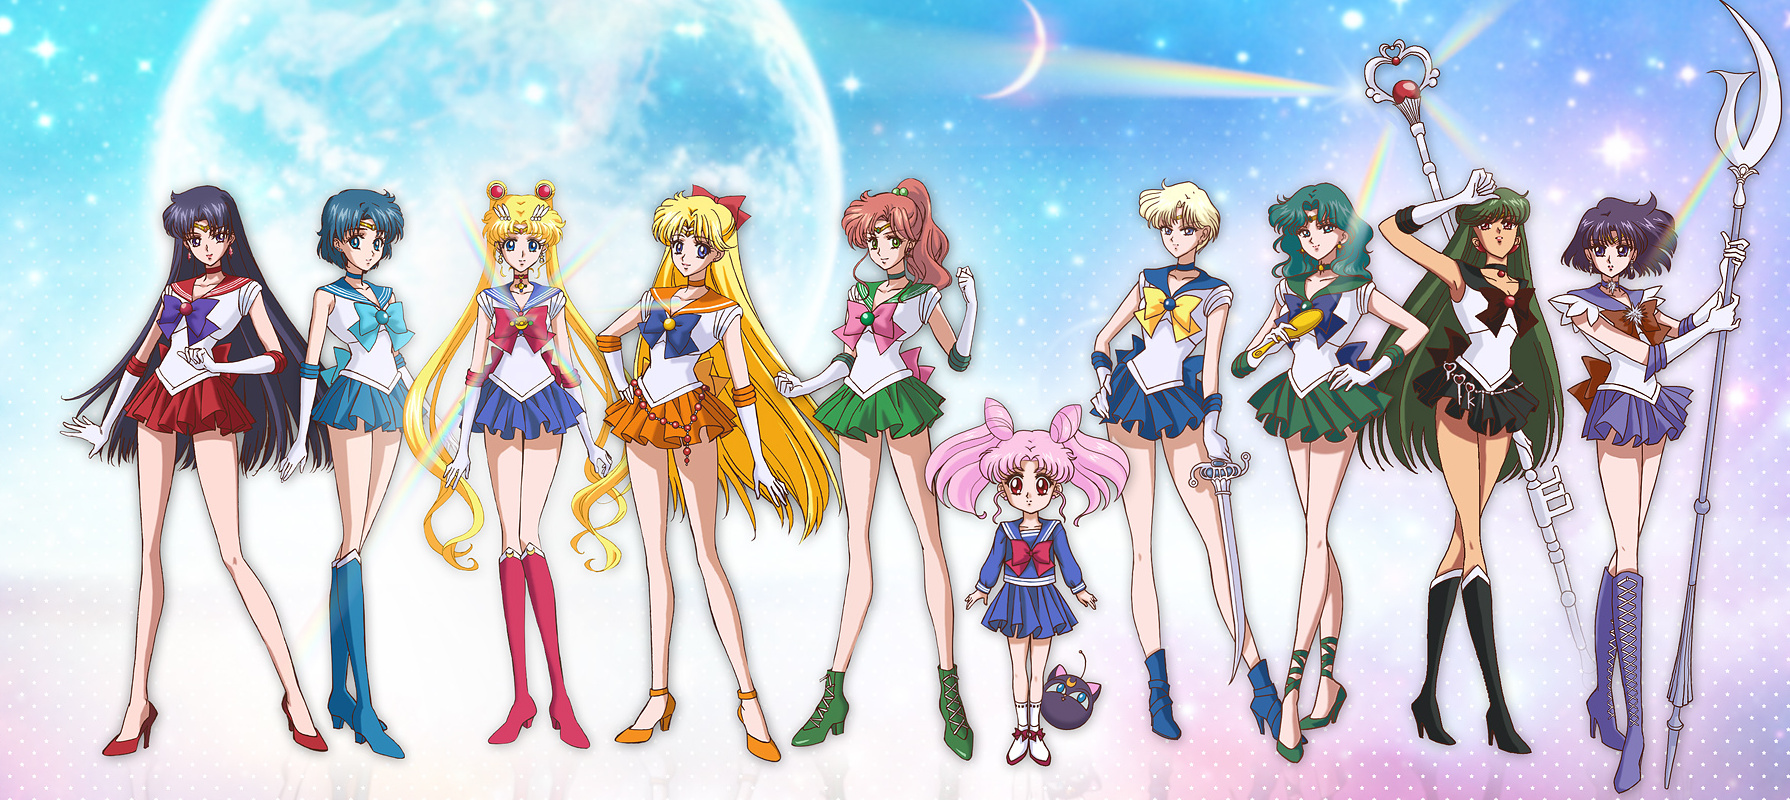 sailor moon crystal images sailor moon hd wallpaper and